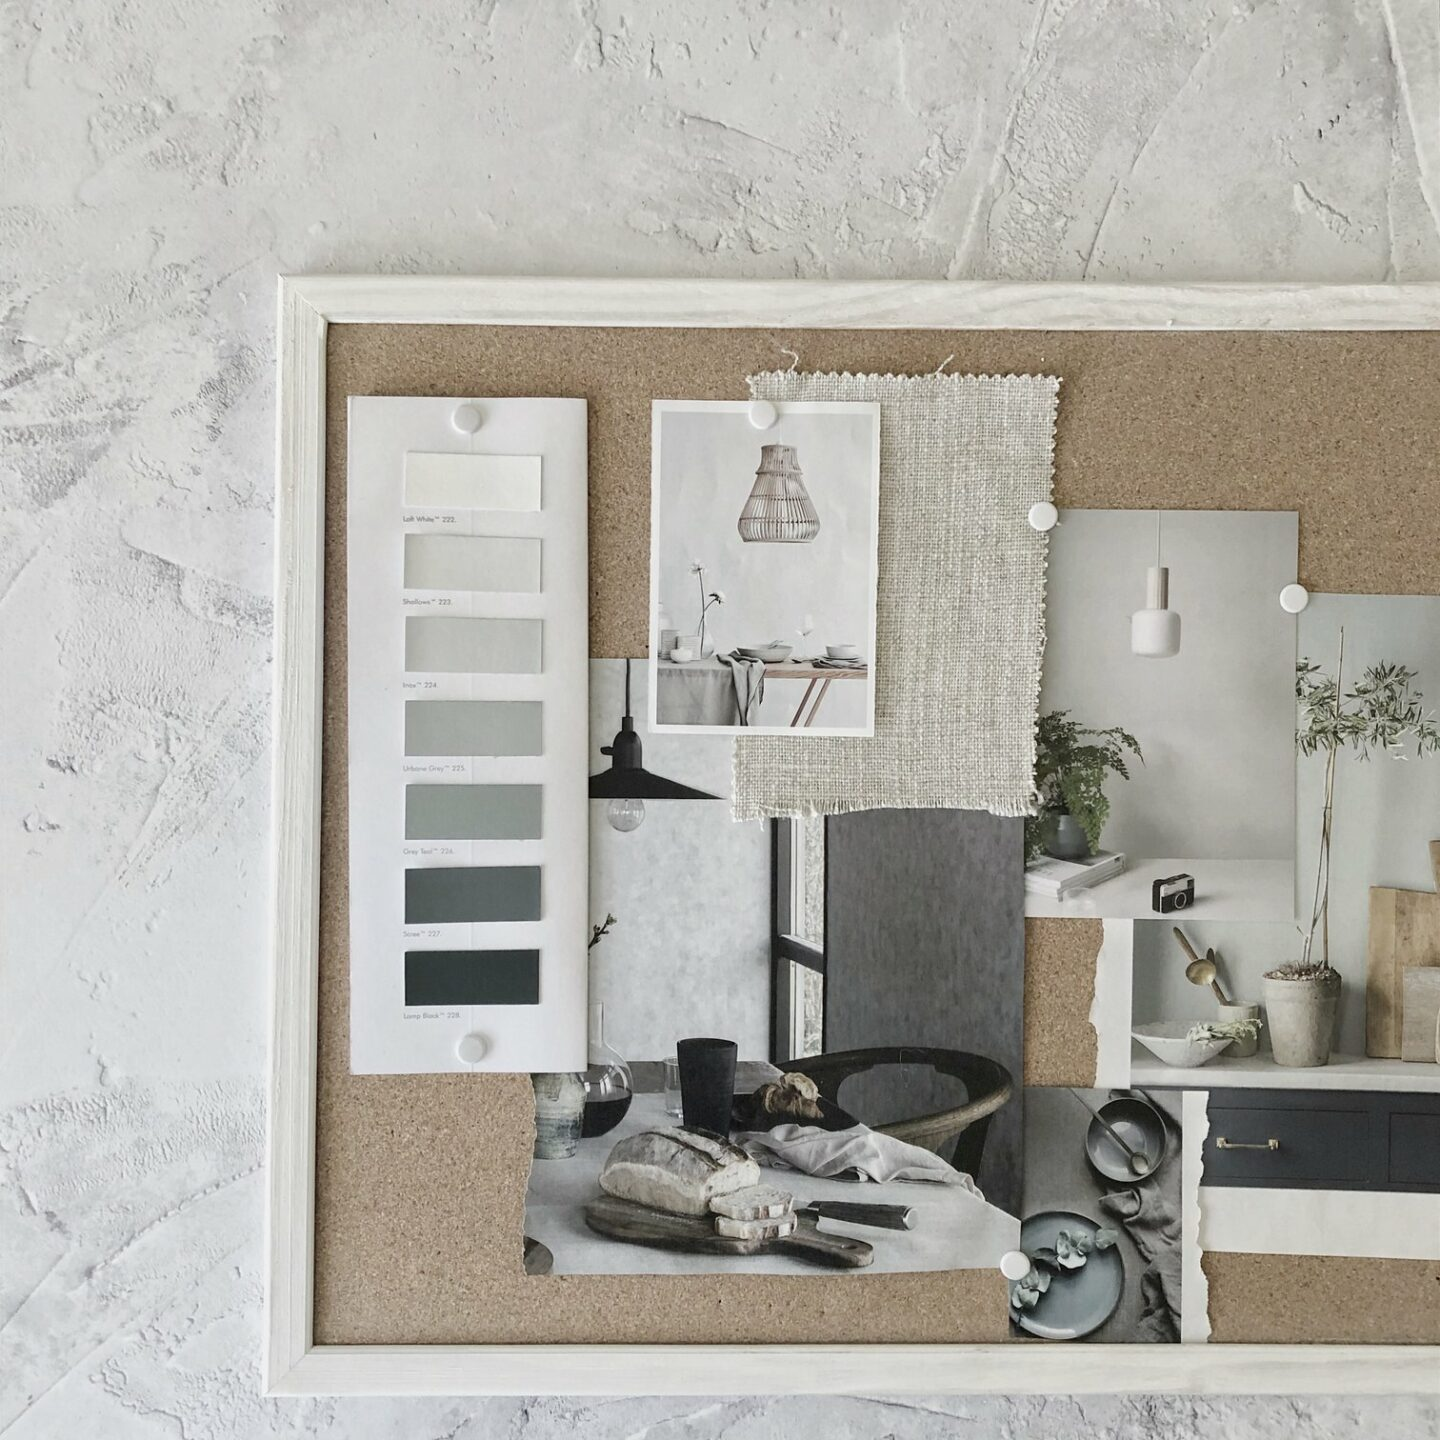 Grey slow living interiors mood board arranged on a cork board